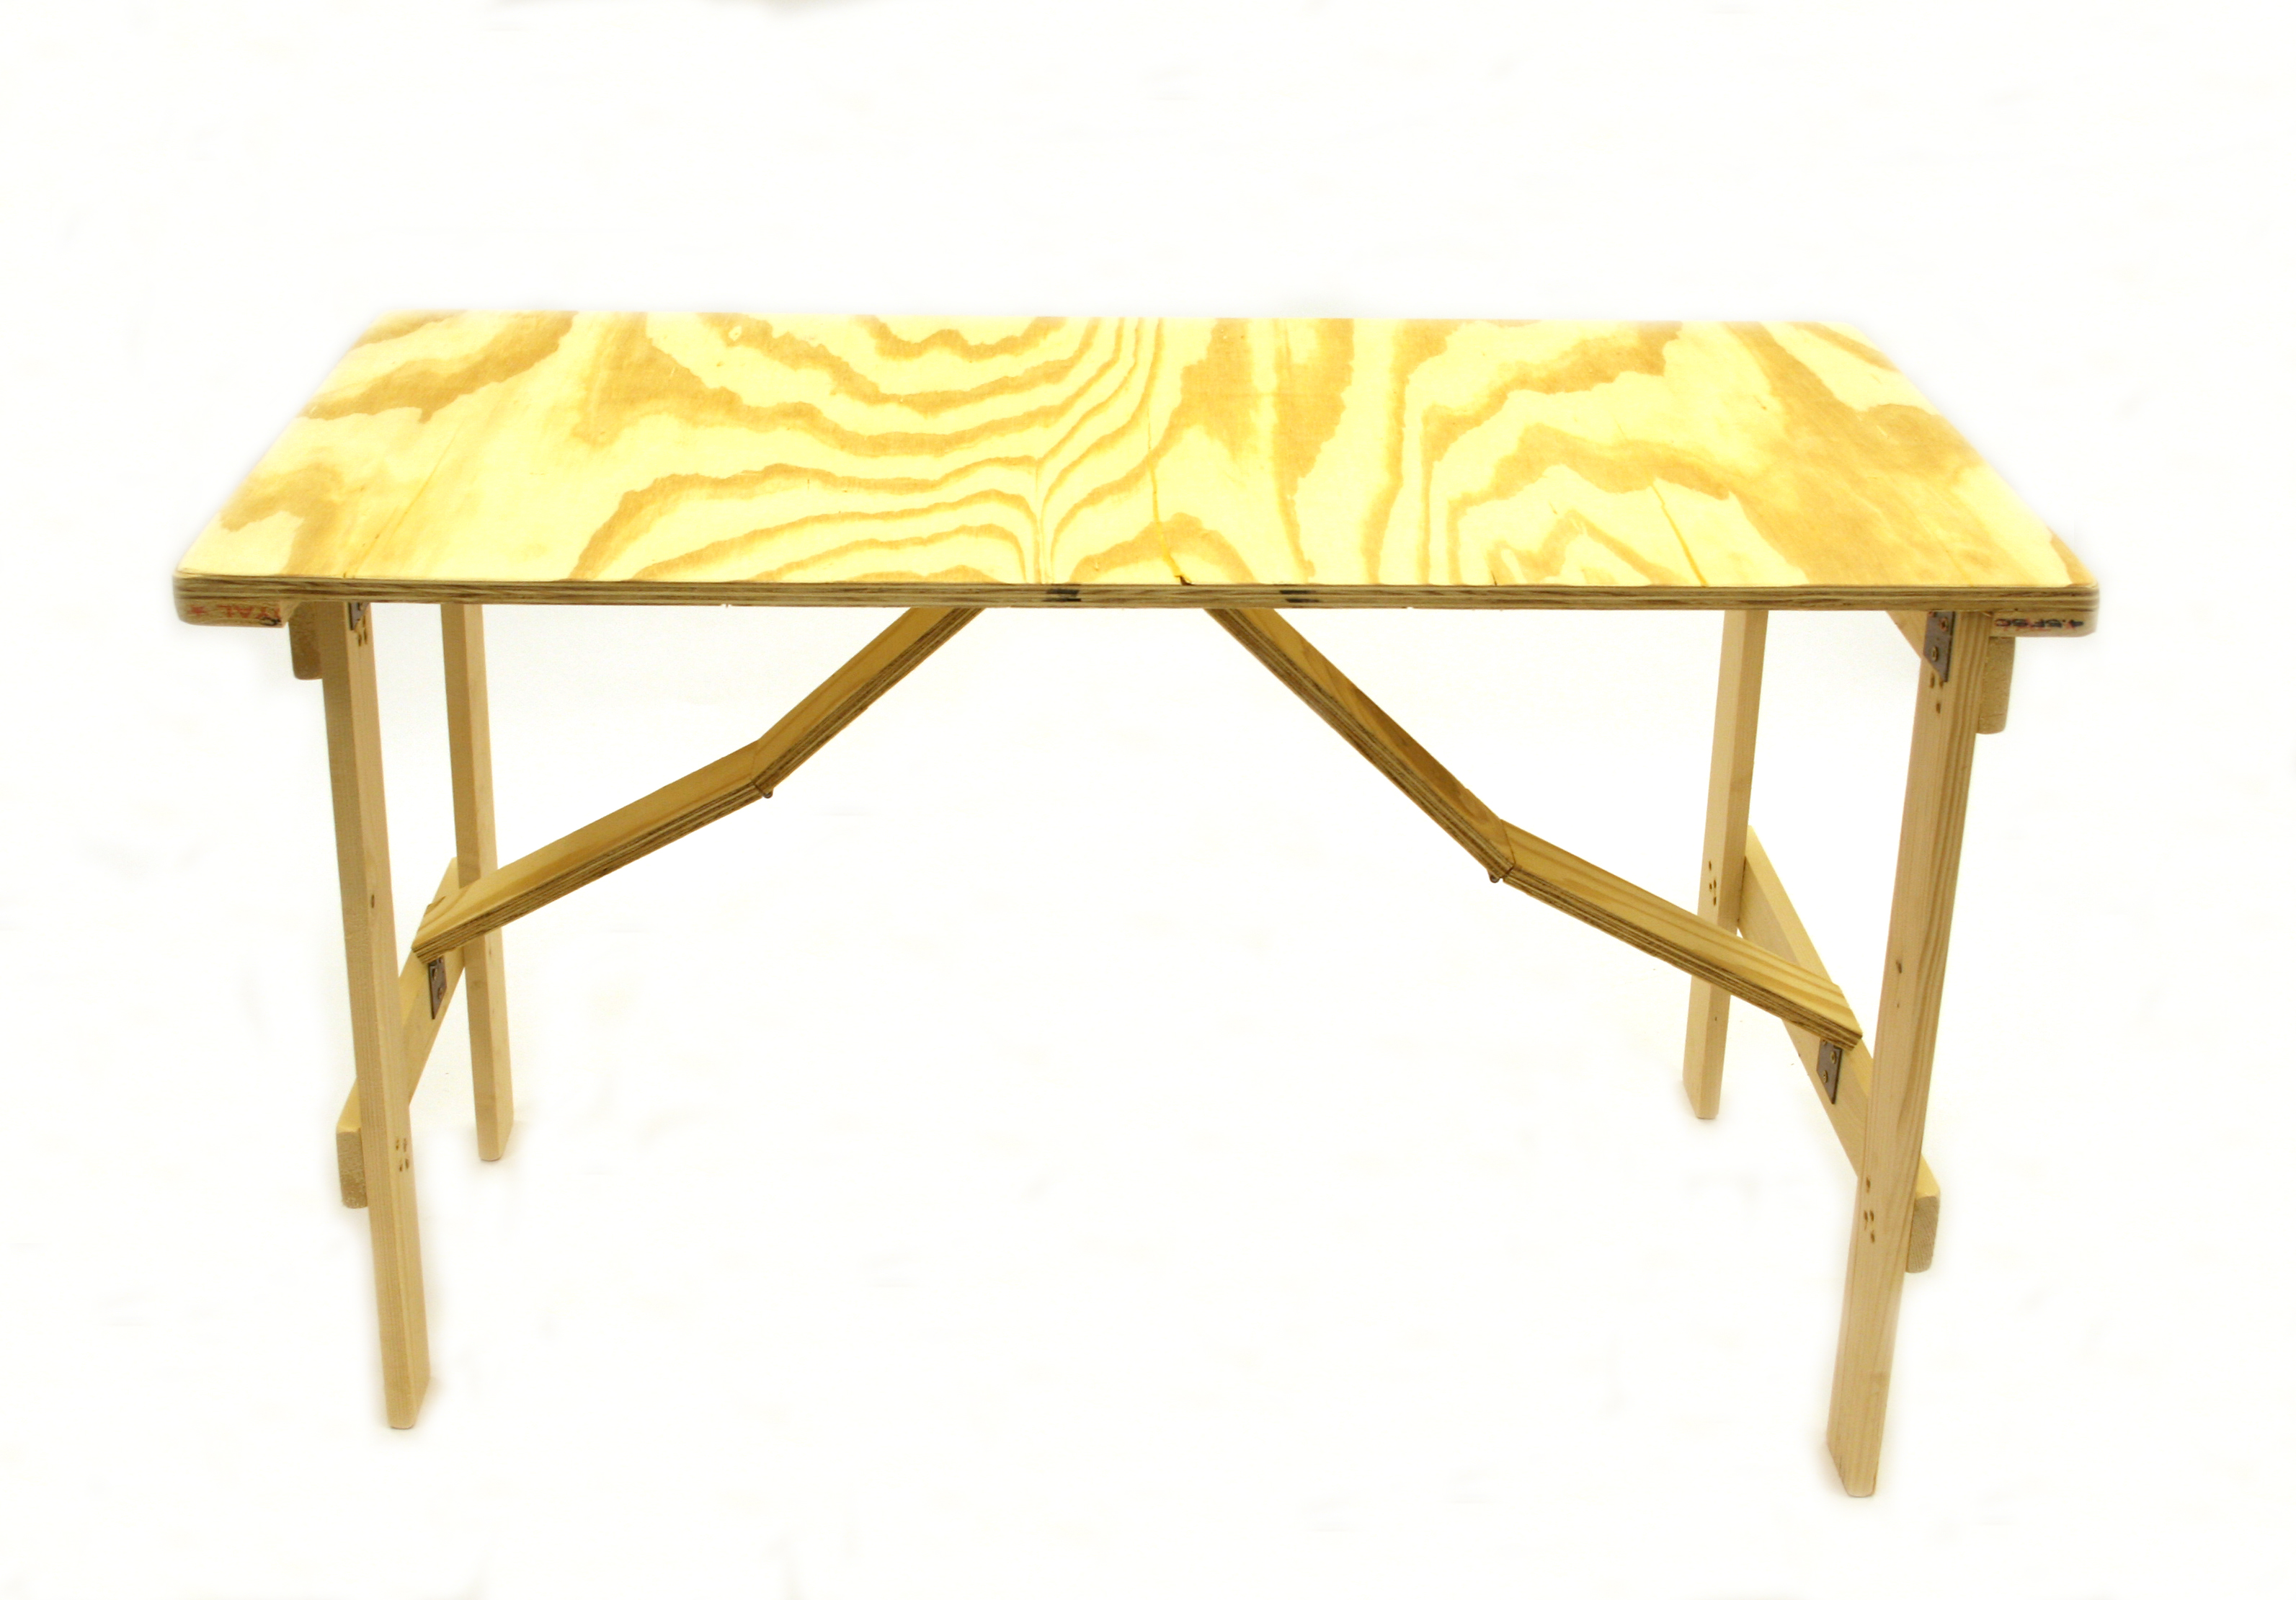 Ply wood  4' x 2' Trestle Table with folding legs  - BE Event Hire